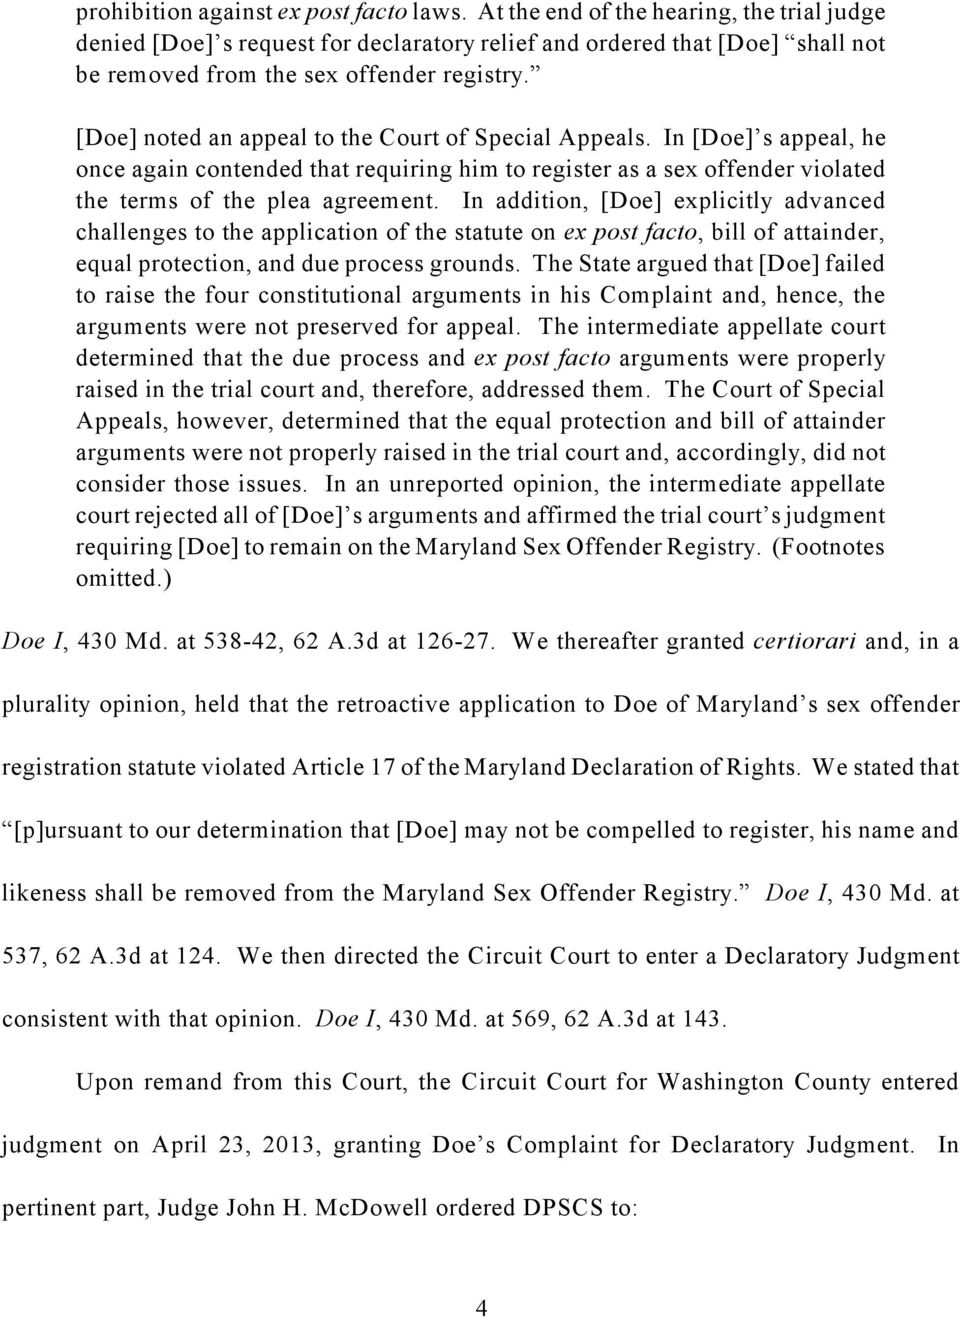 [Doe] noted an appeal to the Court of Special Appeals. In [Doe] s appeal, he once again contended that requiring him to register as a sex offender violated the terms of the plea agreement.